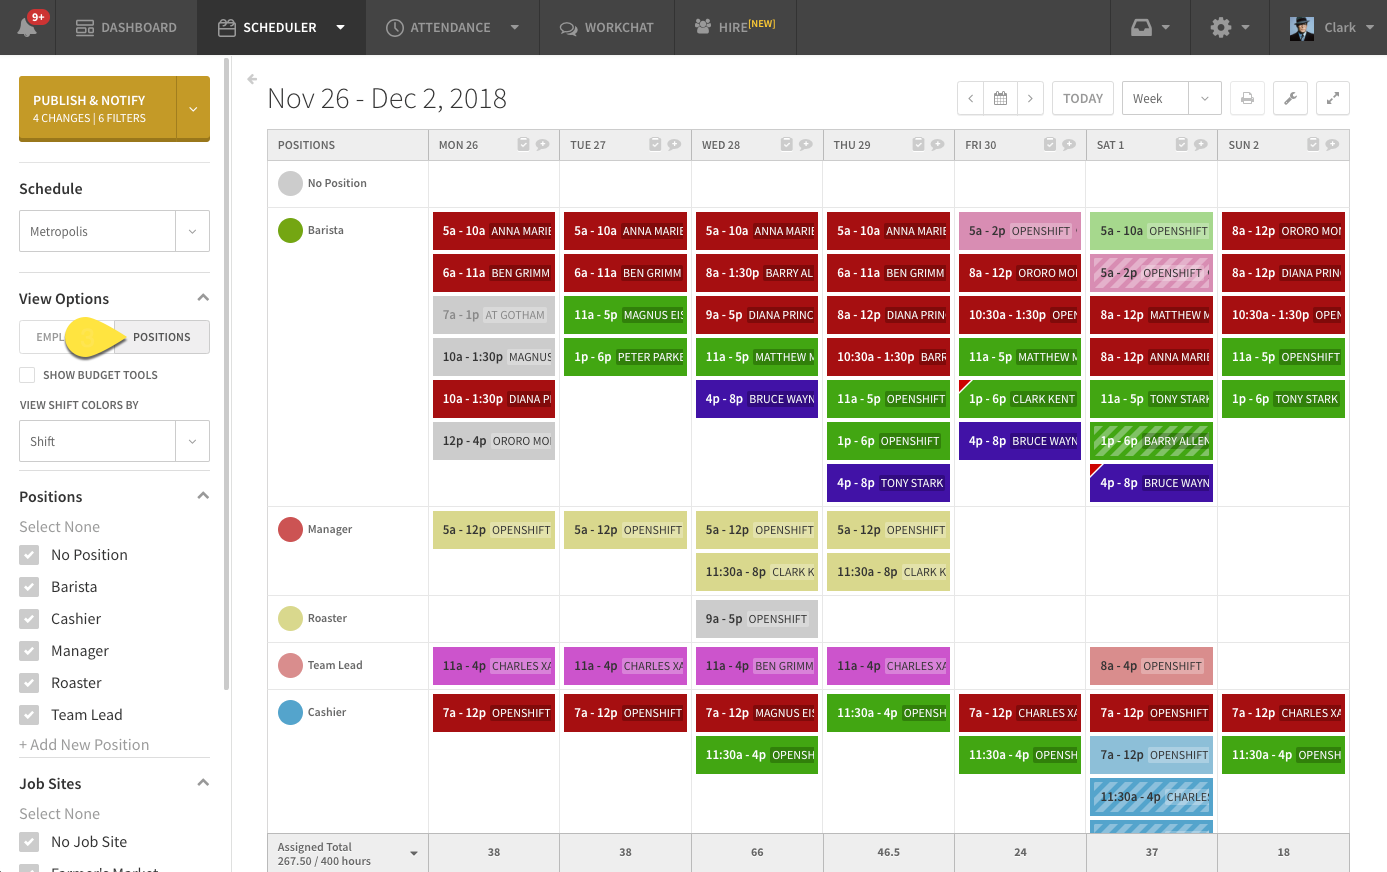 Scheduling An Openshift When I Work Help Center